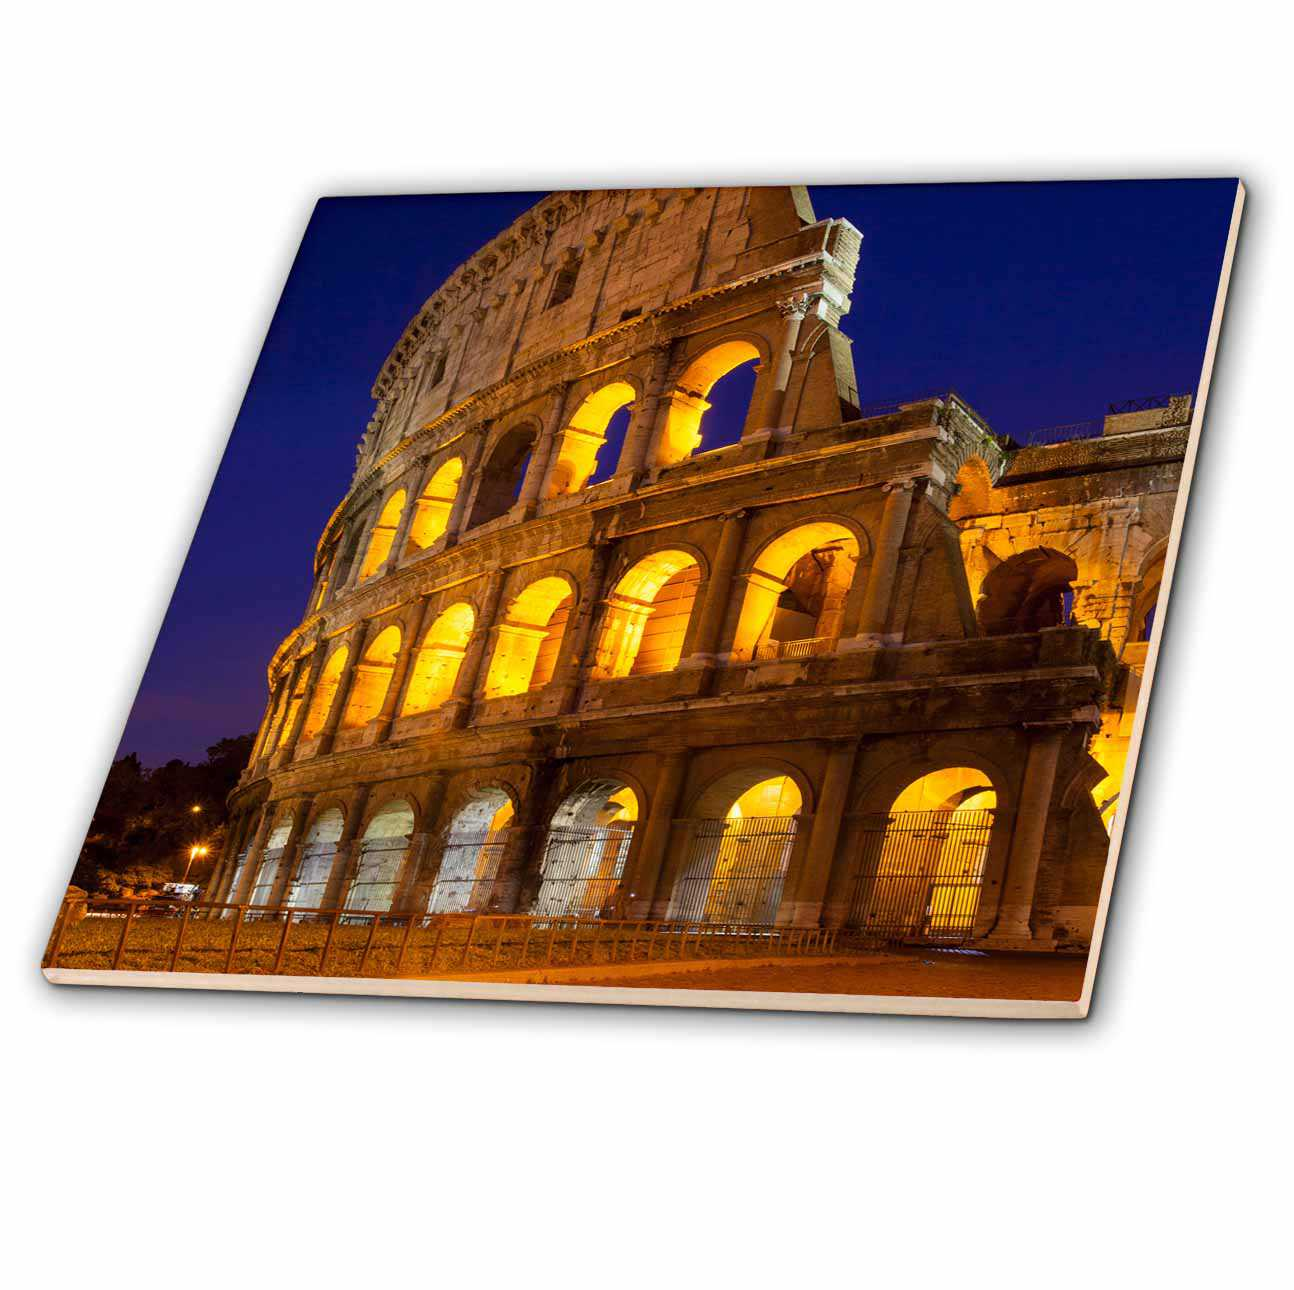 3dRose Cobblestones lead to the Roman Coliseum, Rome, Lazio, Italy. - Ceramic Tile, 4-inch